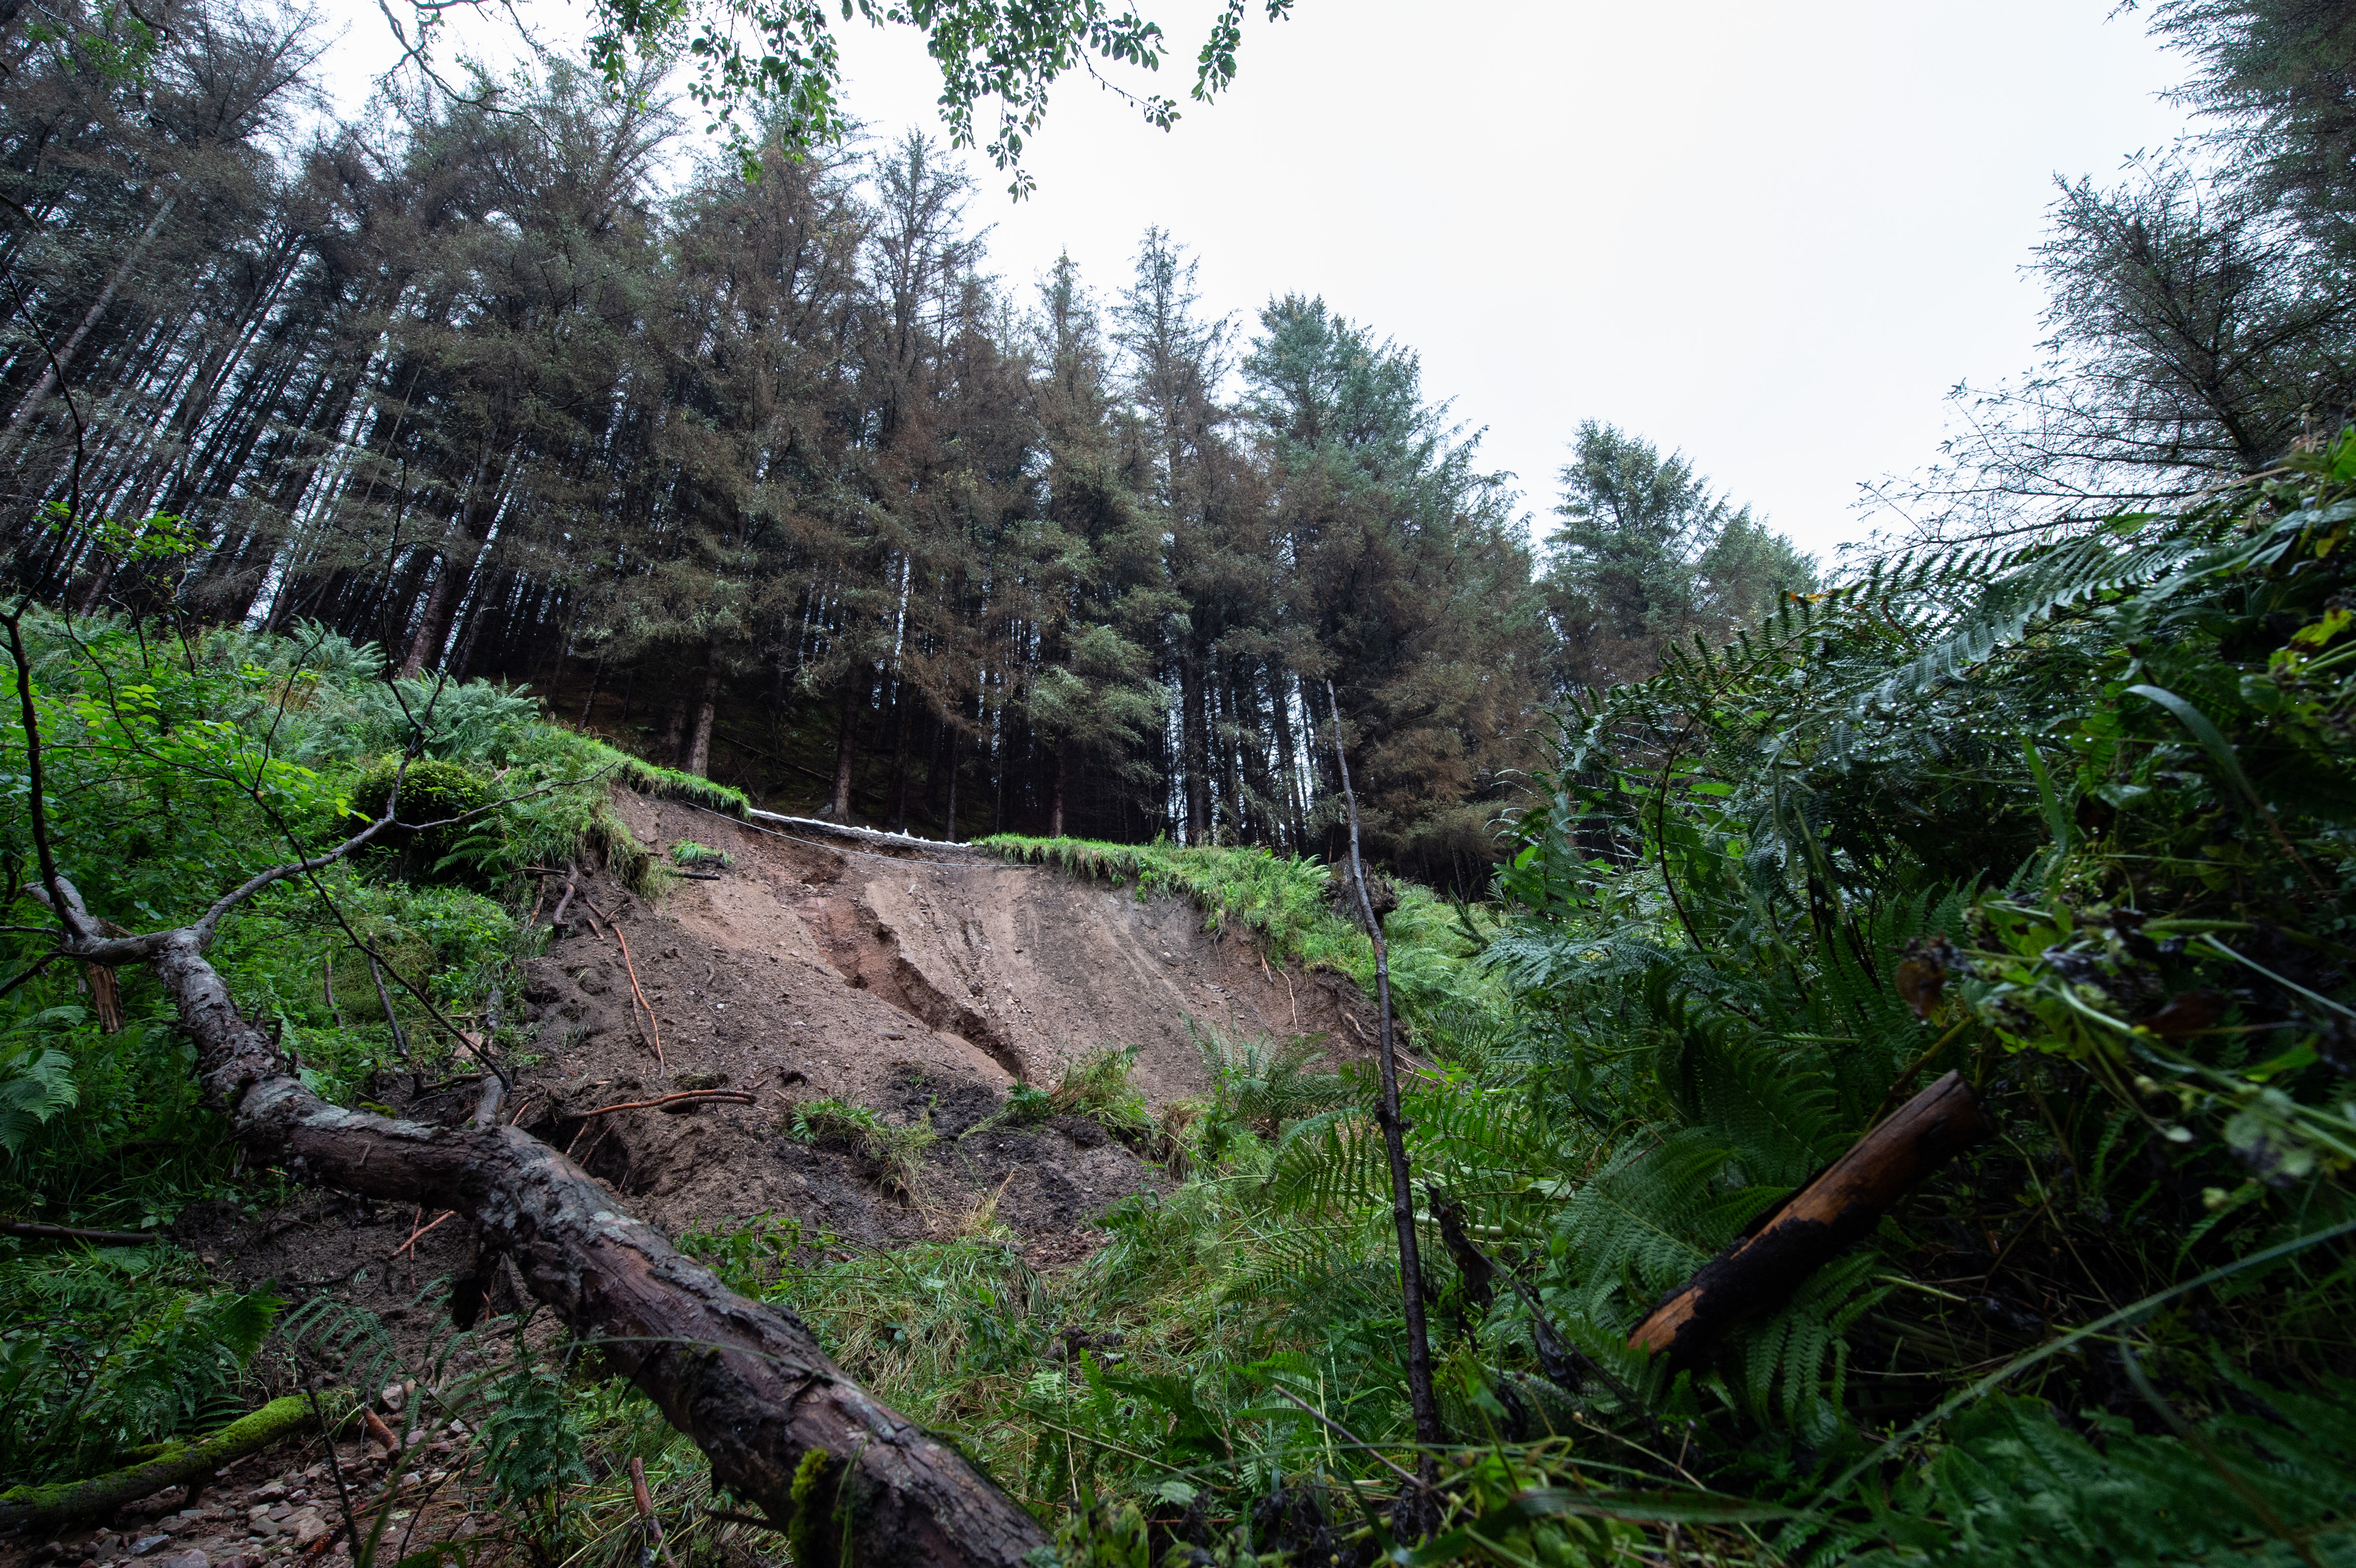 The Cairnty Road near Mulben was closed due to a landslip.